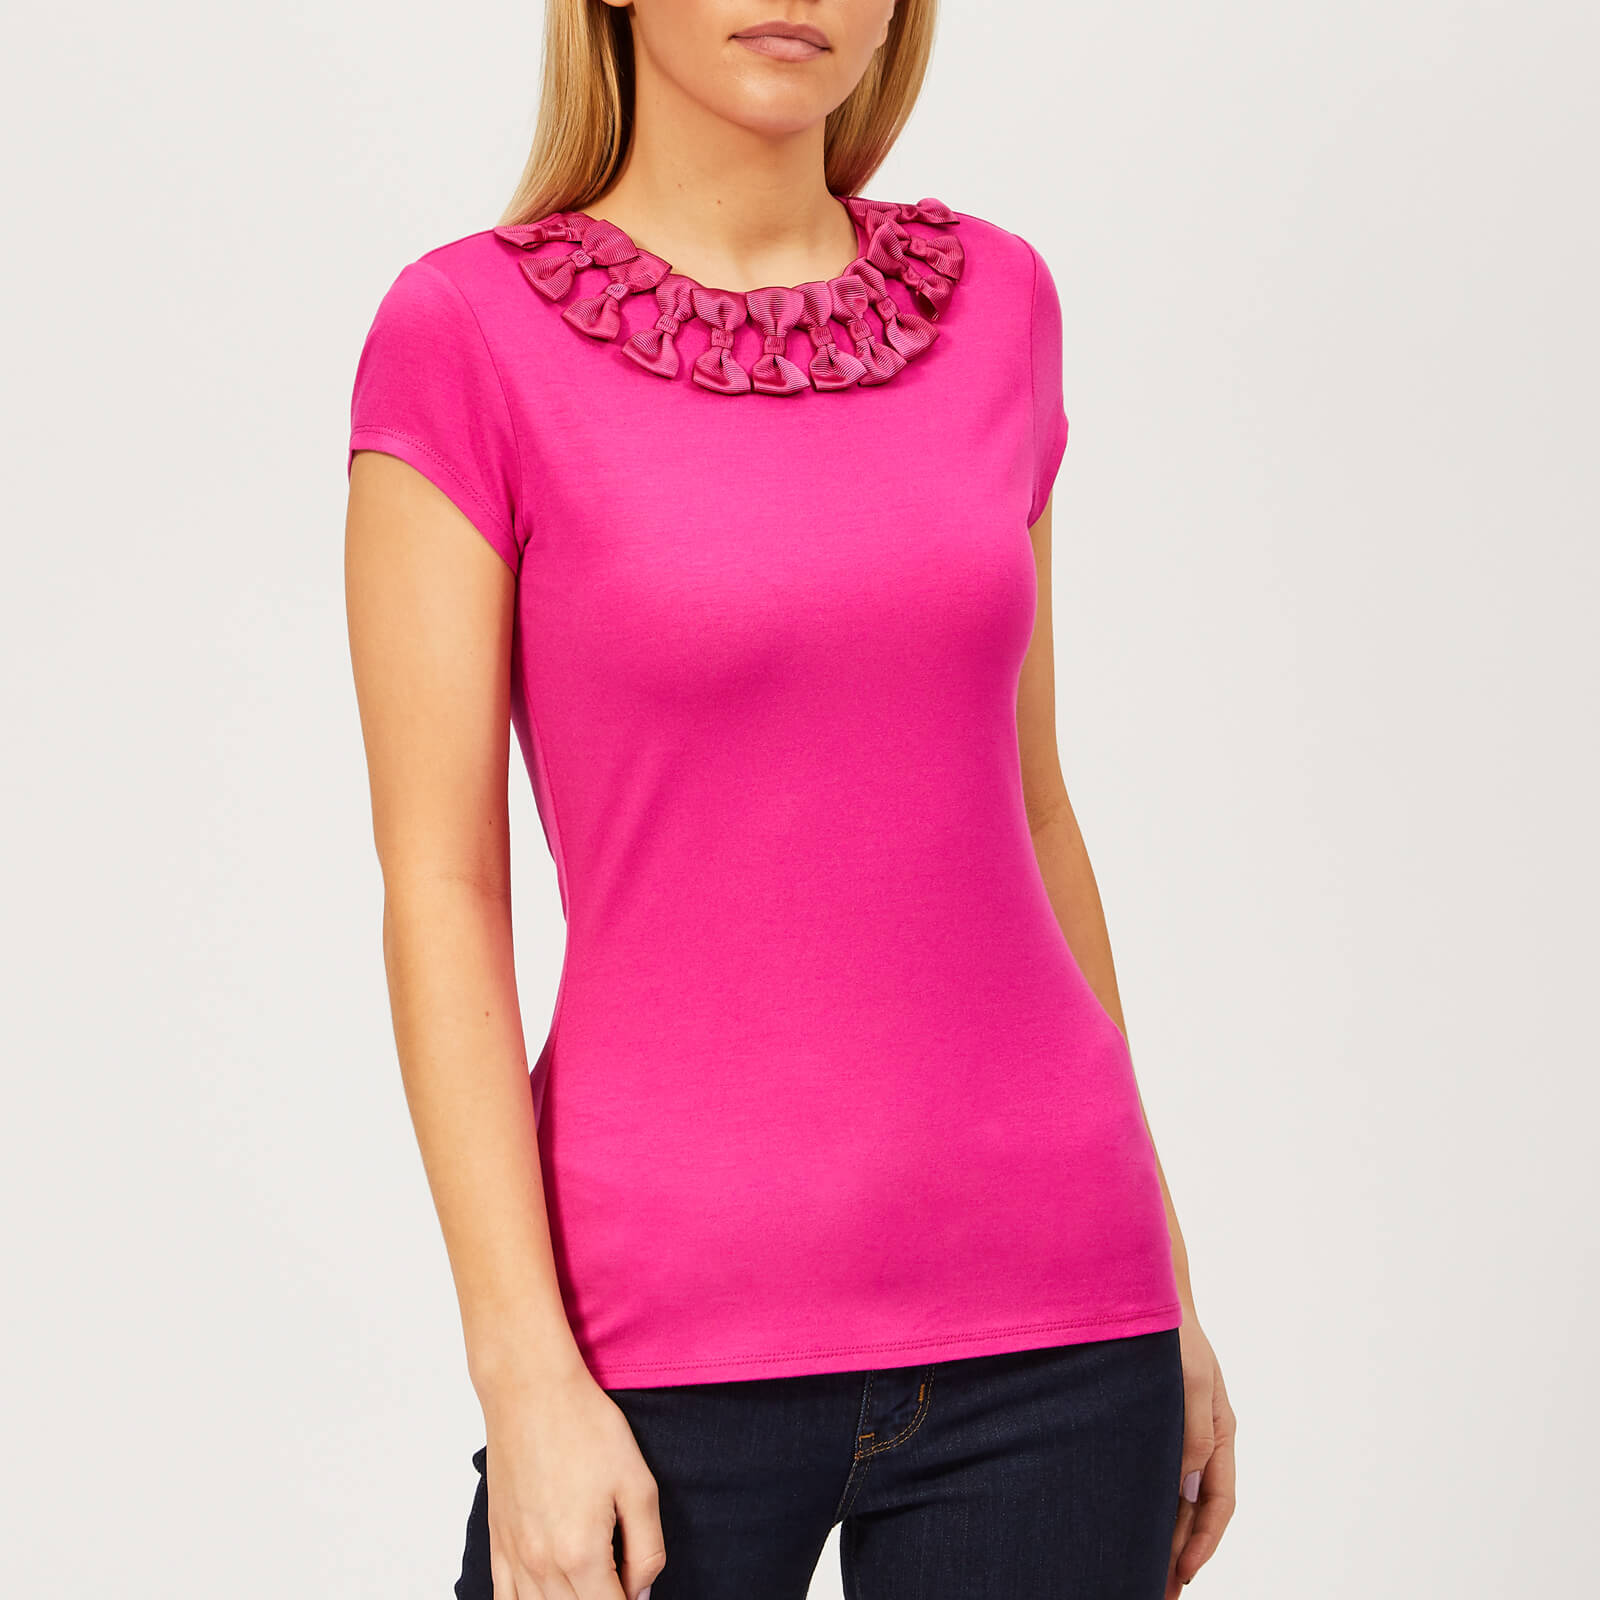 c345ae32050ea Ted Baker Women s Charre Bow Neck Trim Detail T-Shirt - Bright-Pink Womens  Clothing